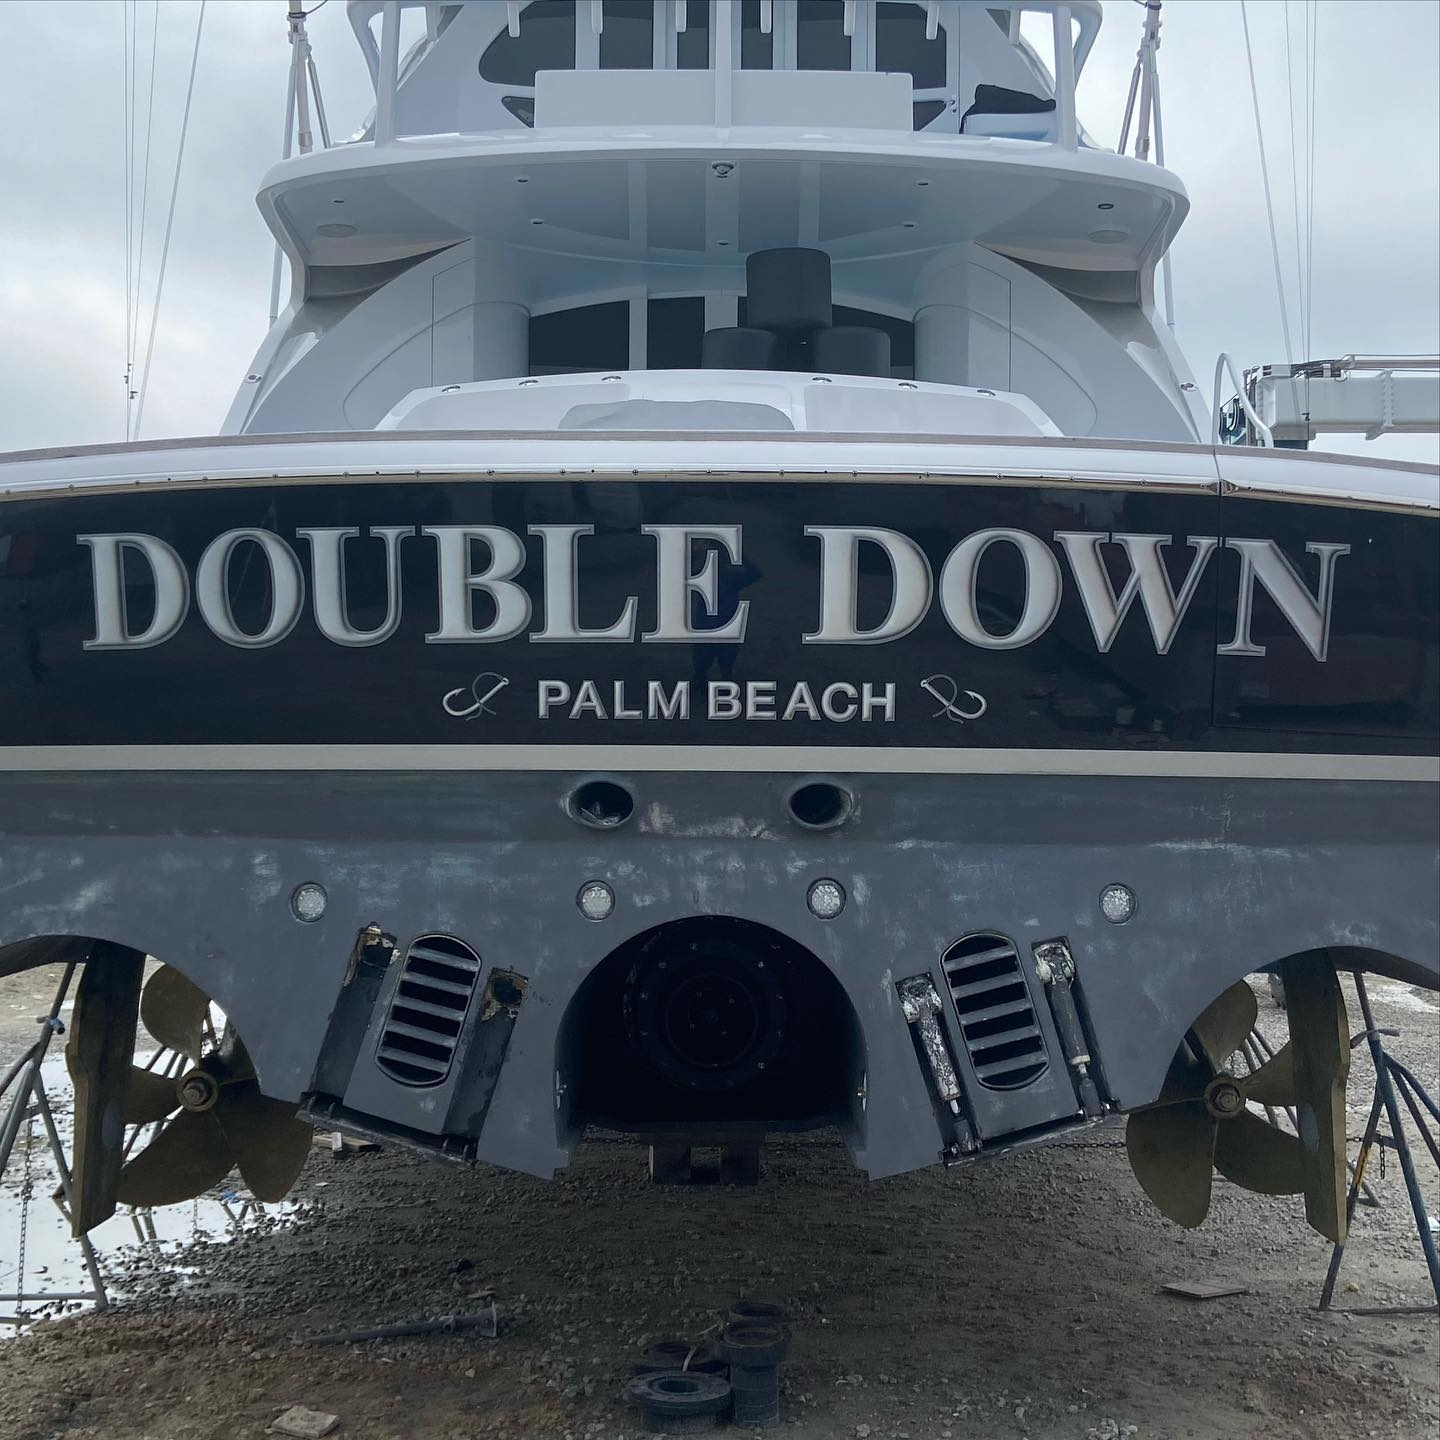 Hull color was considered with the design of this hand painted name for Double Down. Everett Nautical always utilizes some color of each vessel into it's respective name design to create a cohesive look. Double Down's name features painted highlight and shadow letter fills with a silver outline, complete with custom designed hailing port graphics.   The 86' enclosed fly bridge, Double Down, is Tribute's largest boat to date. Double Down launched in 2008 and was designed and engineered by Applied Concepts.   All work completed at Jarrett Bay Boatworks, Beaufort, NC.